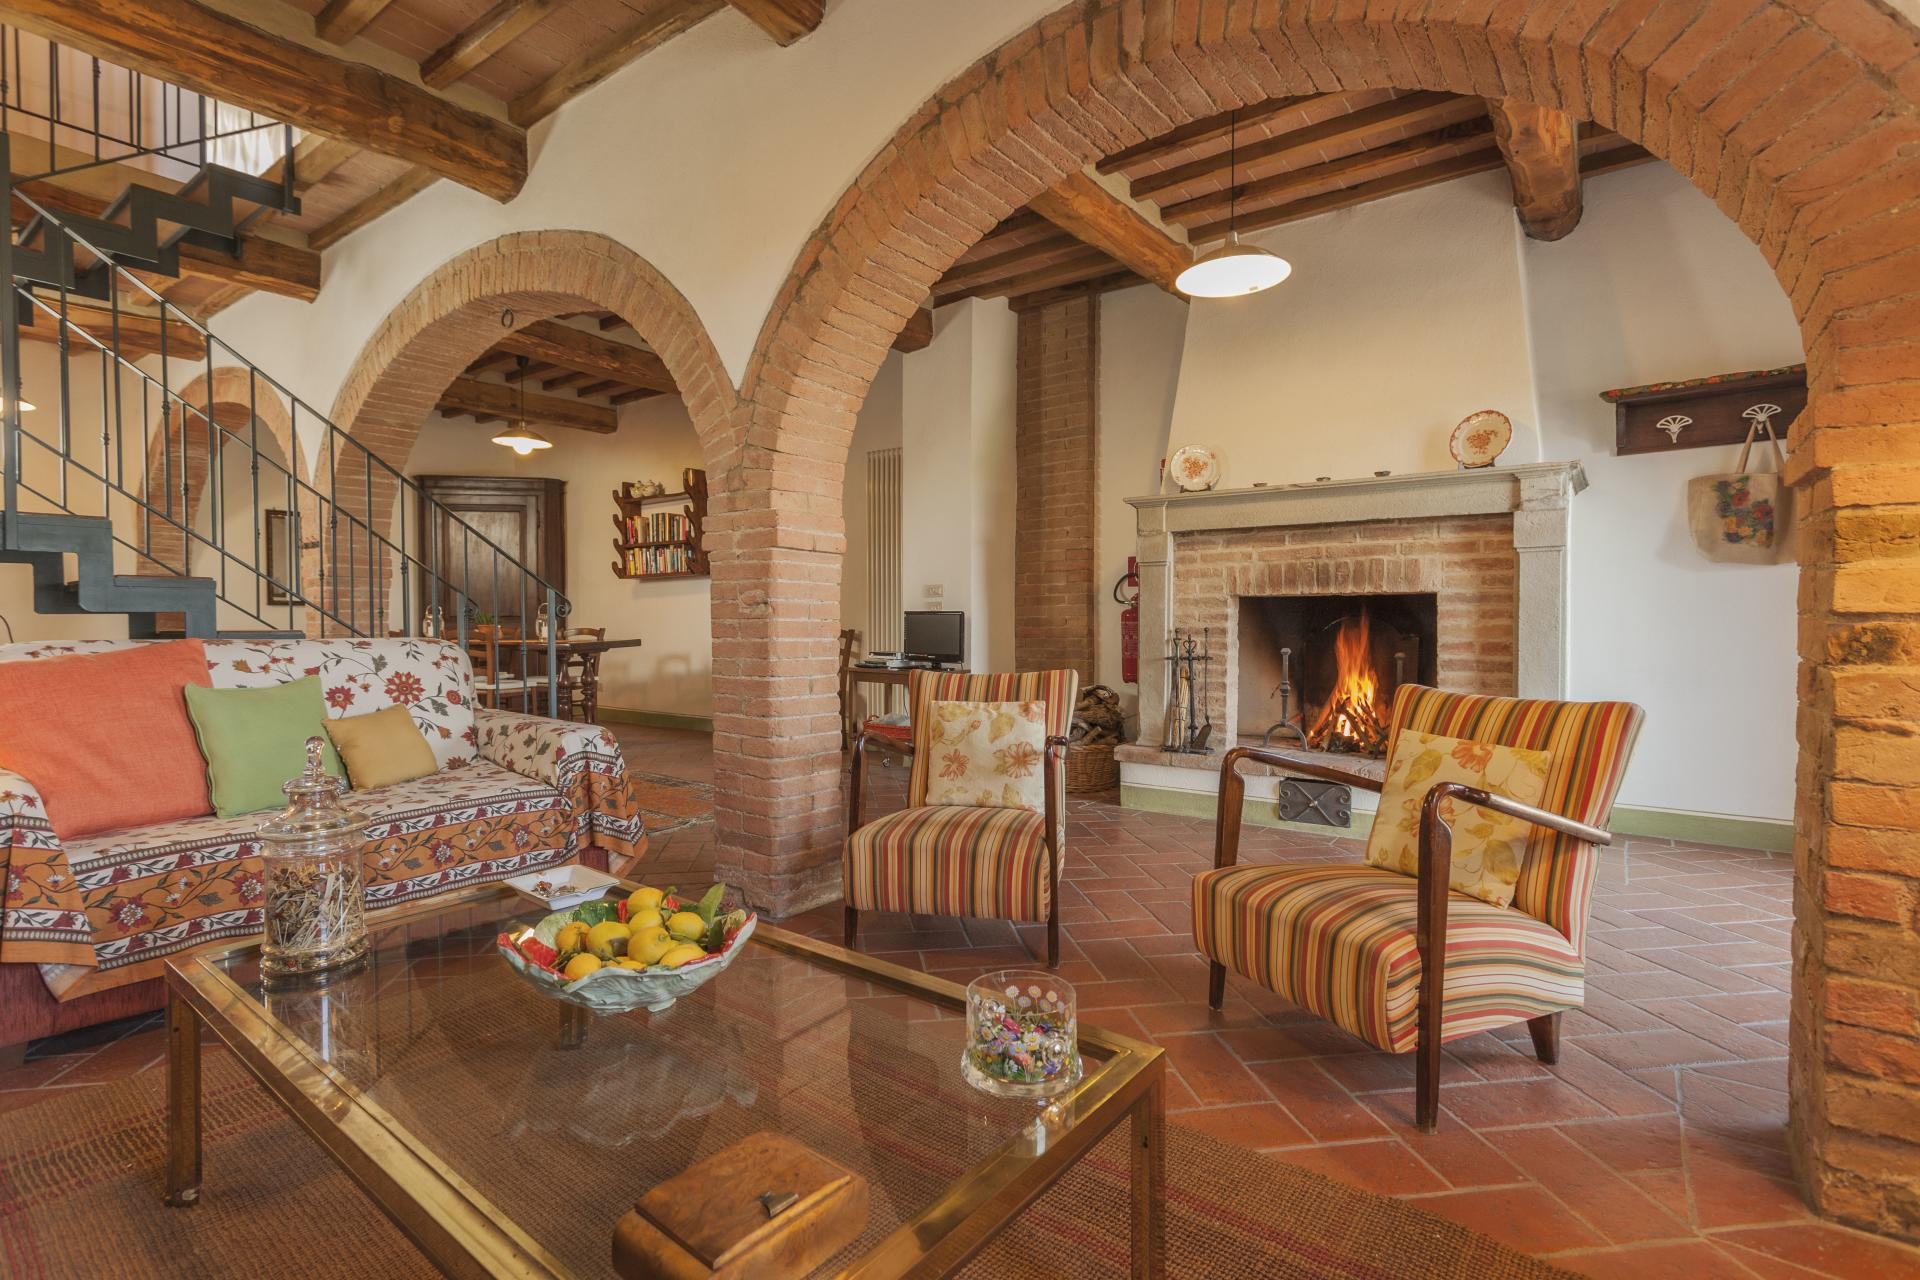 Lounge area with coffee table, Casa Giovanni, Tuscany, San Giovanni d'Asso.